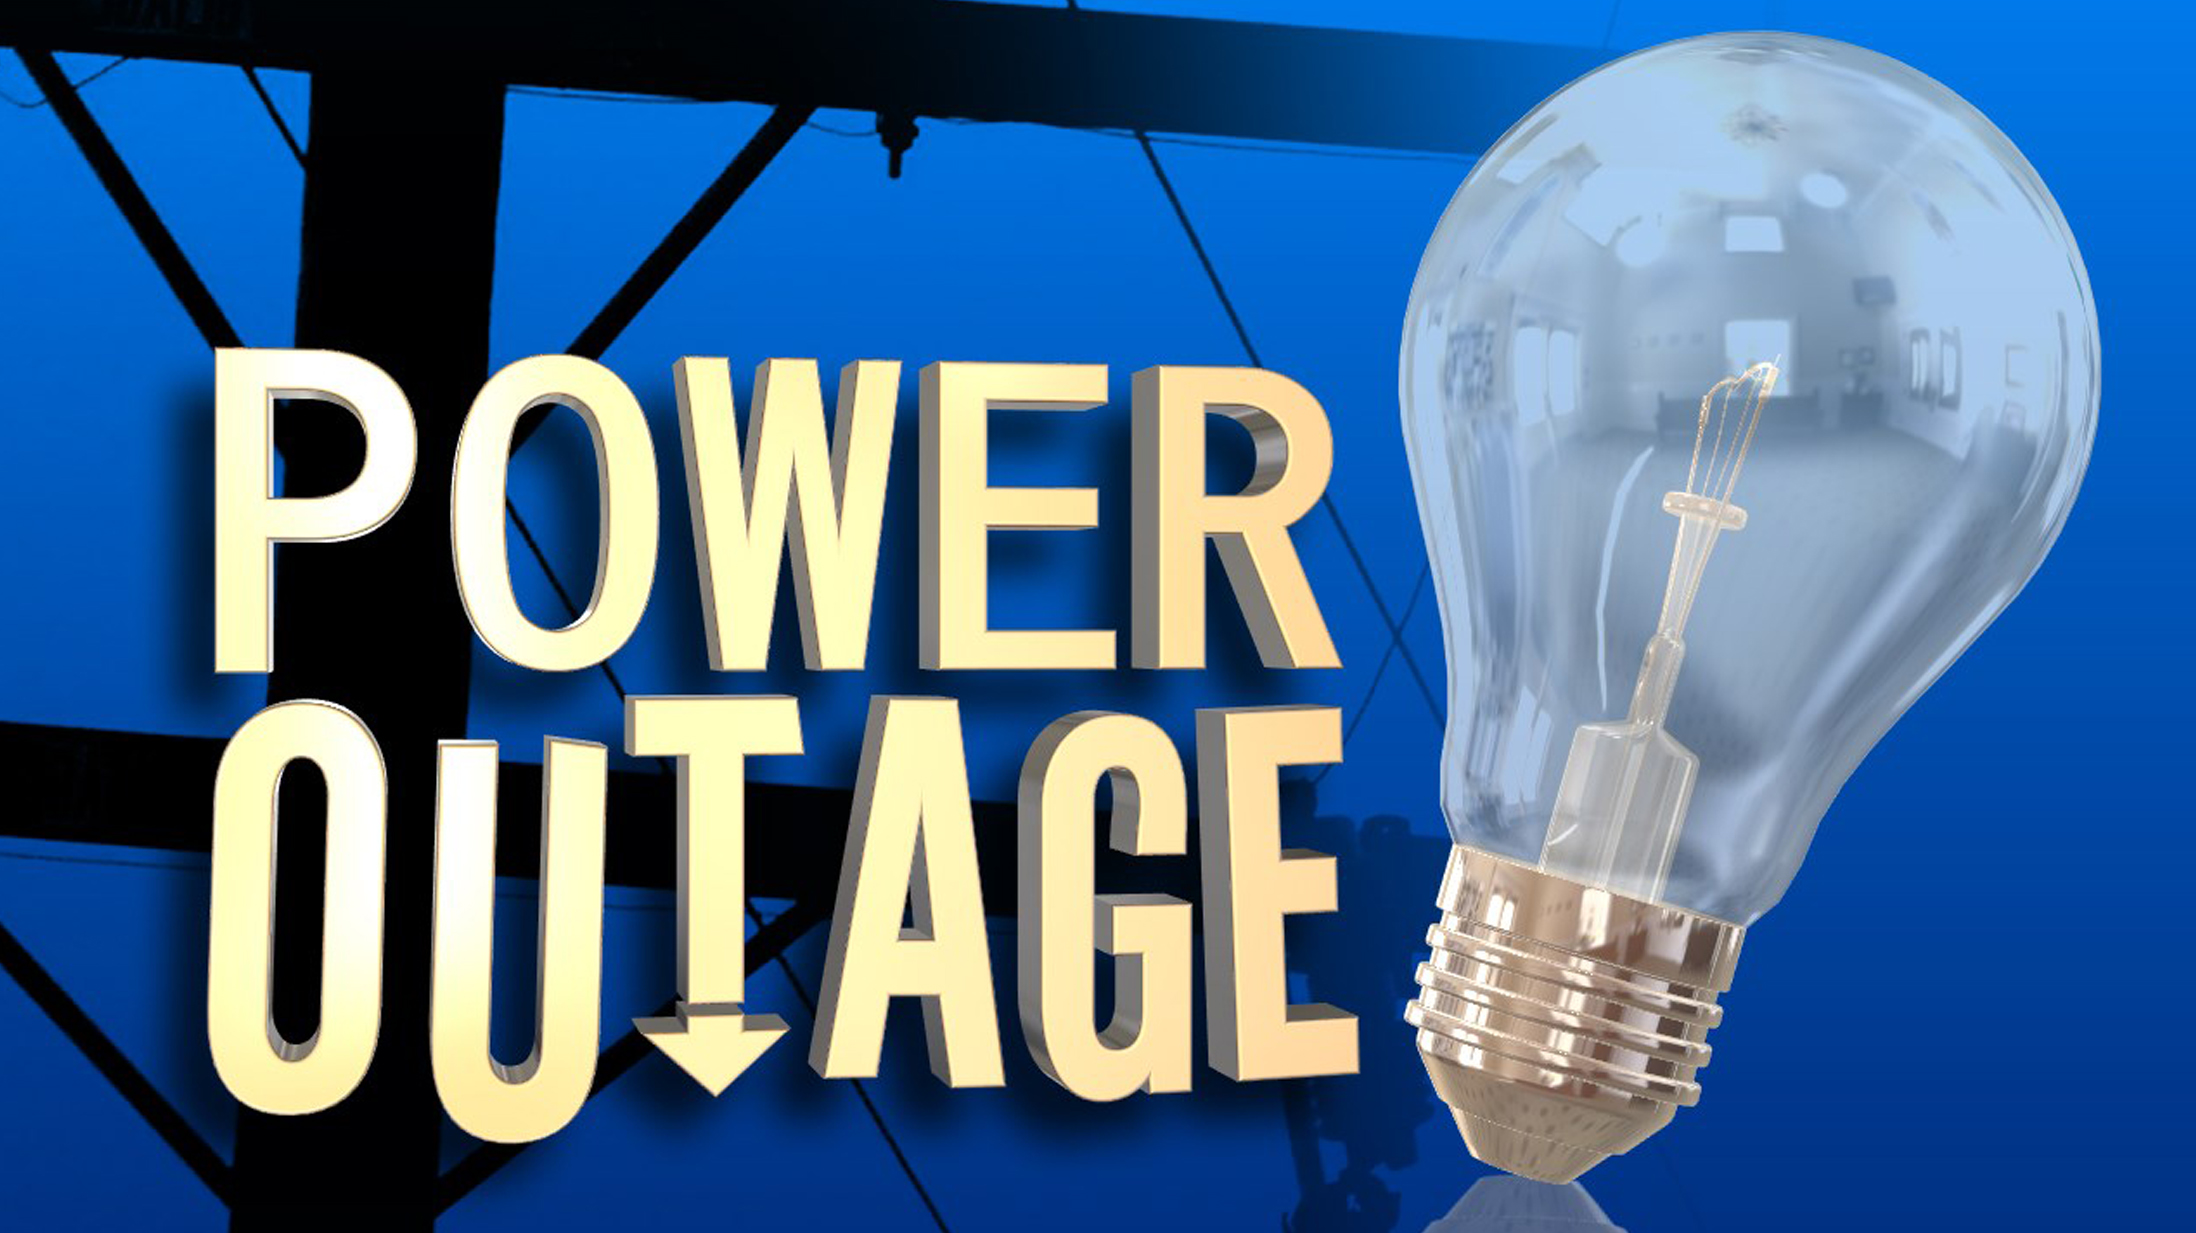 Power Outage 11 18 2015_1447895258788.jpg